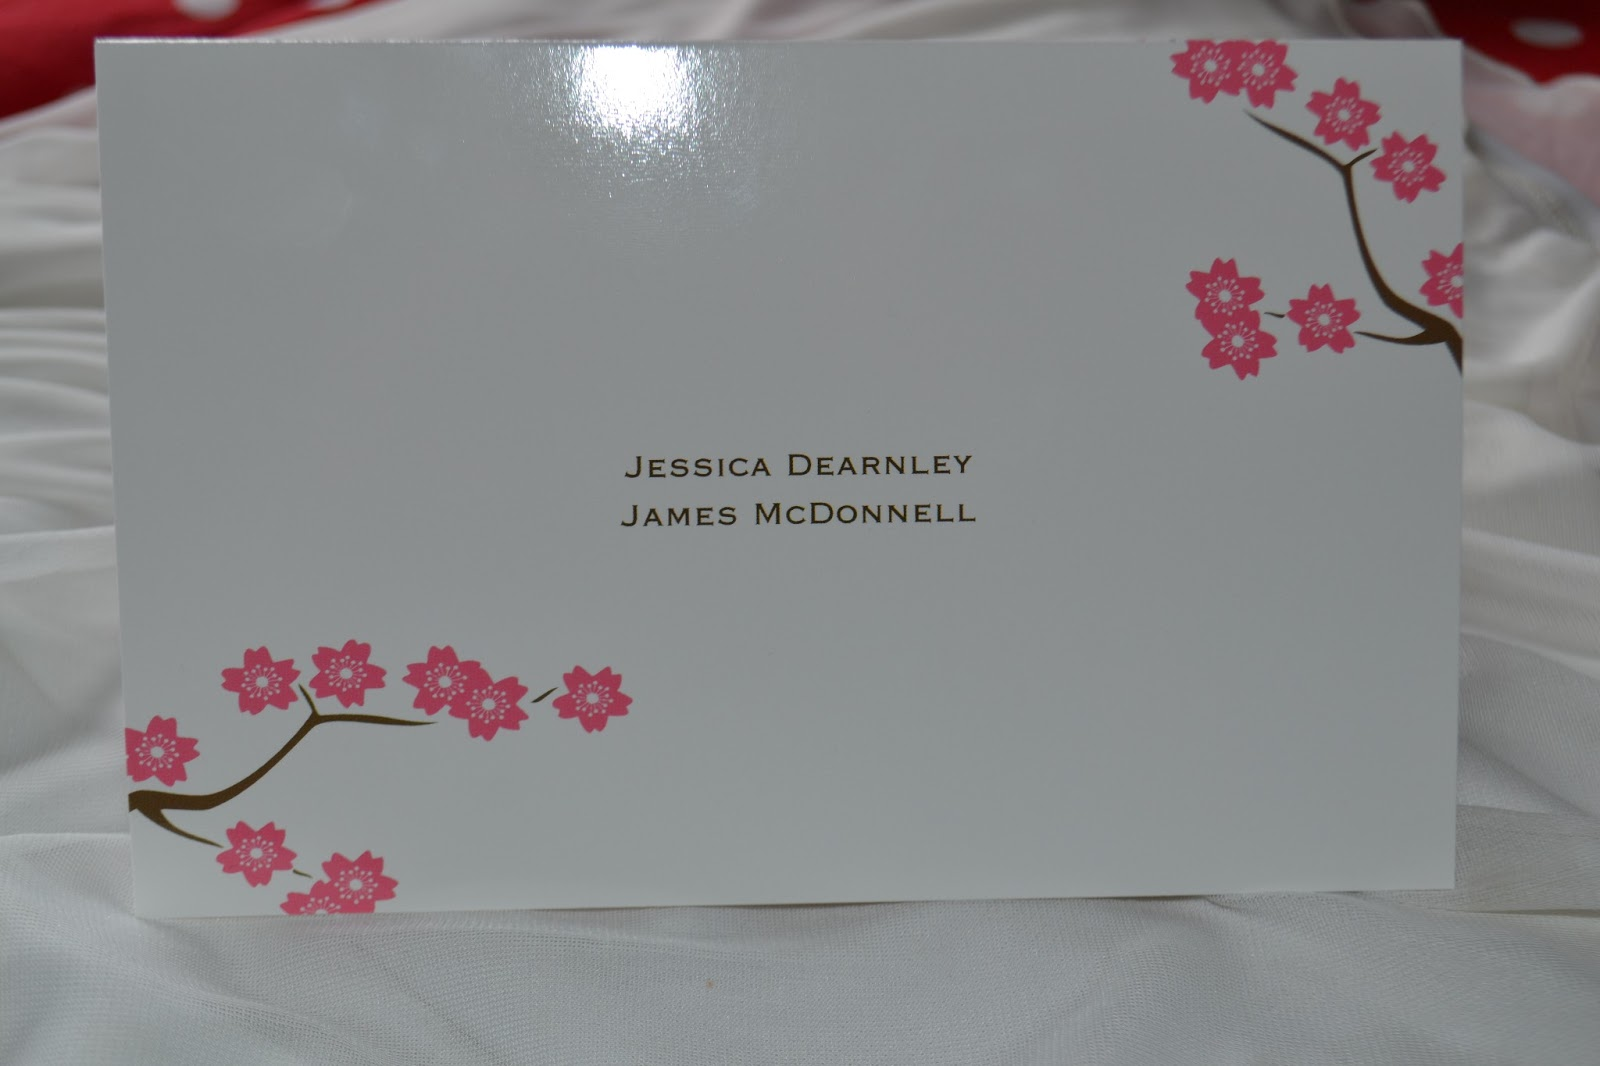 Forevermissvanity a uk lifestyle blogger here comes the bride i love the little flowers and the simplicity of this invitation when dreaming of my perfect invites i was looking for something along these lines monicamarmolfo Gallery